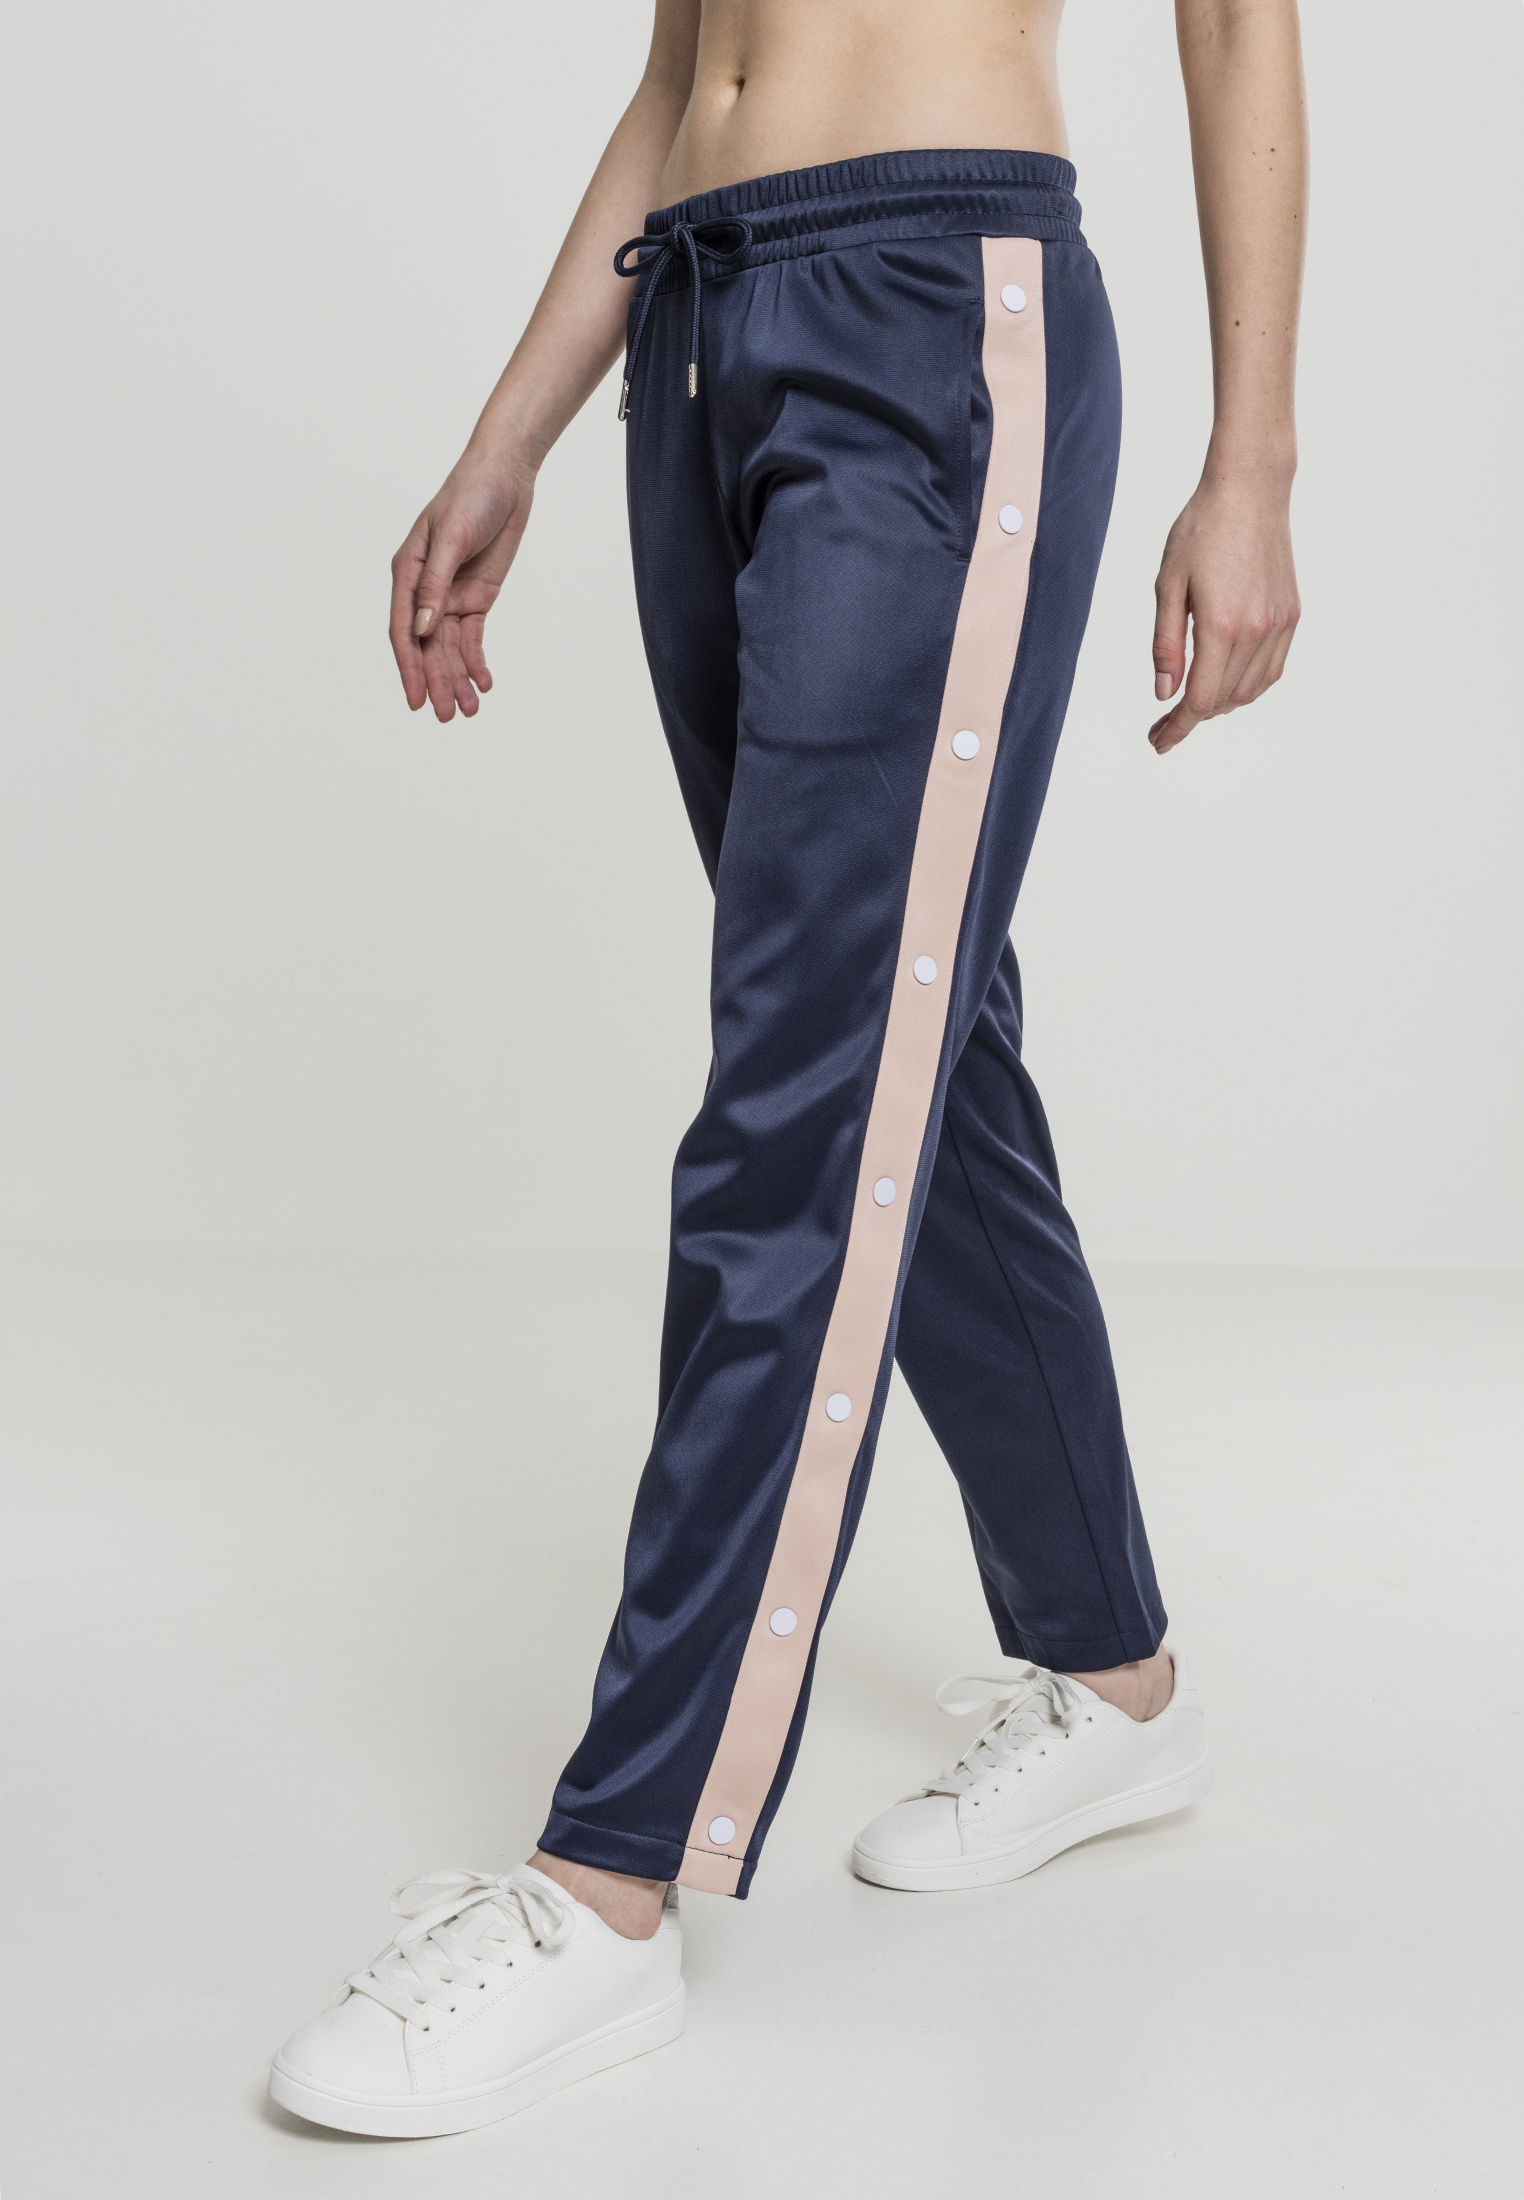 urban classics ladies button up track pants damen jogginghose dunkelblau rosa 508480 bei kapatcha. Black Bedroom Furniture Sets. Home Design Ideas